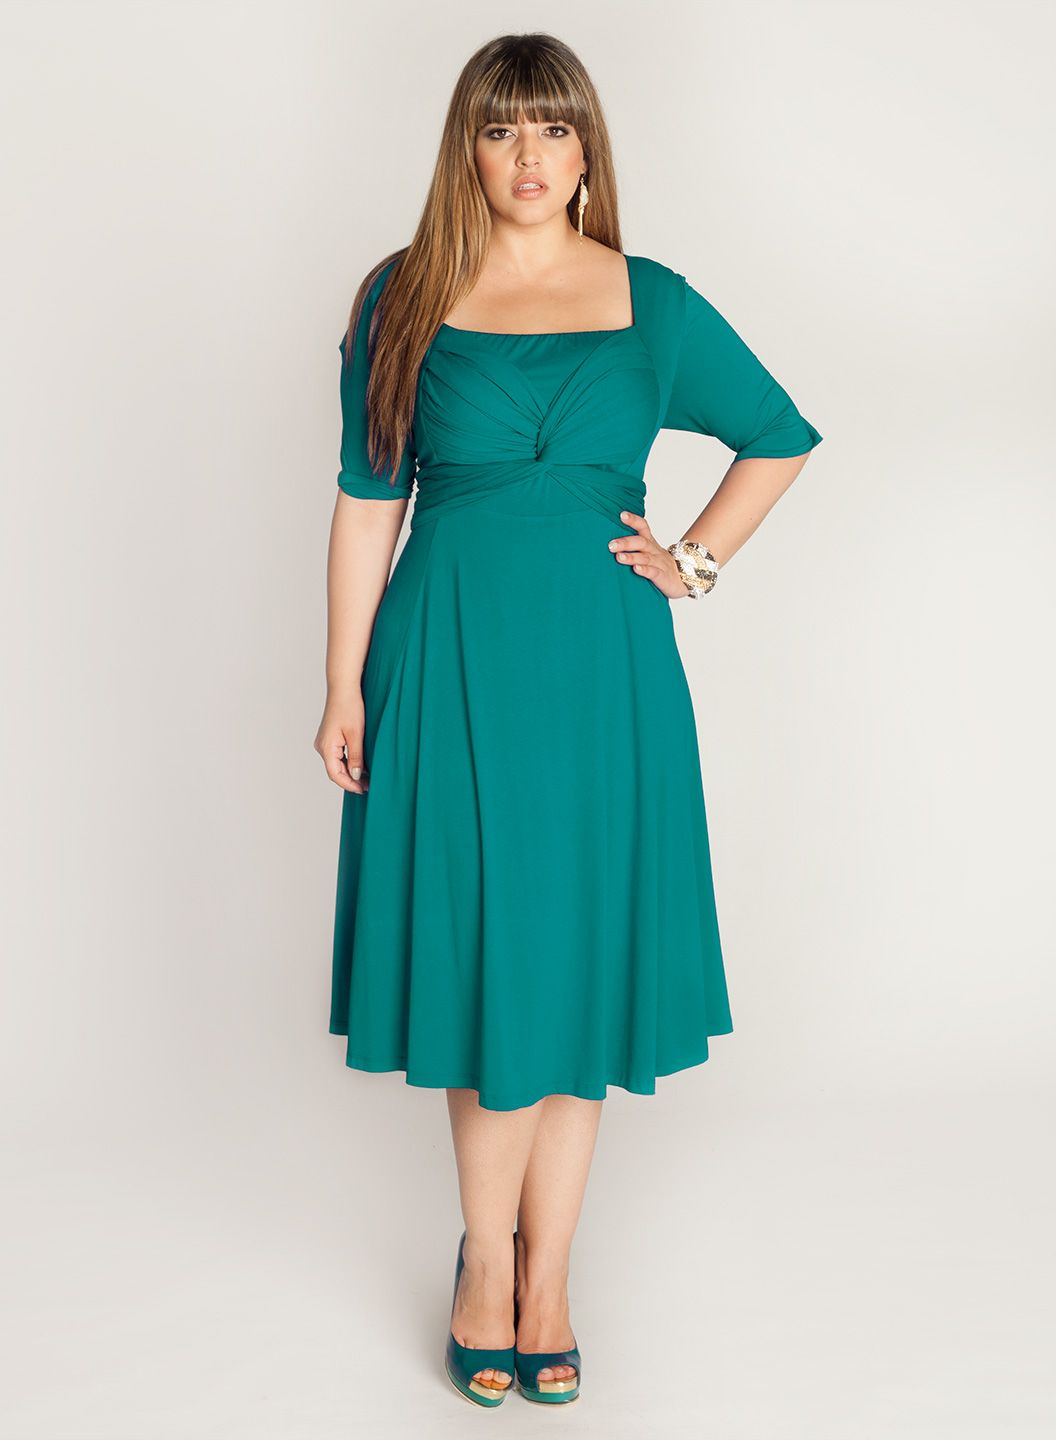 Plus Size Woman Clothing, High Fashion Dresses for the Full Figure ...